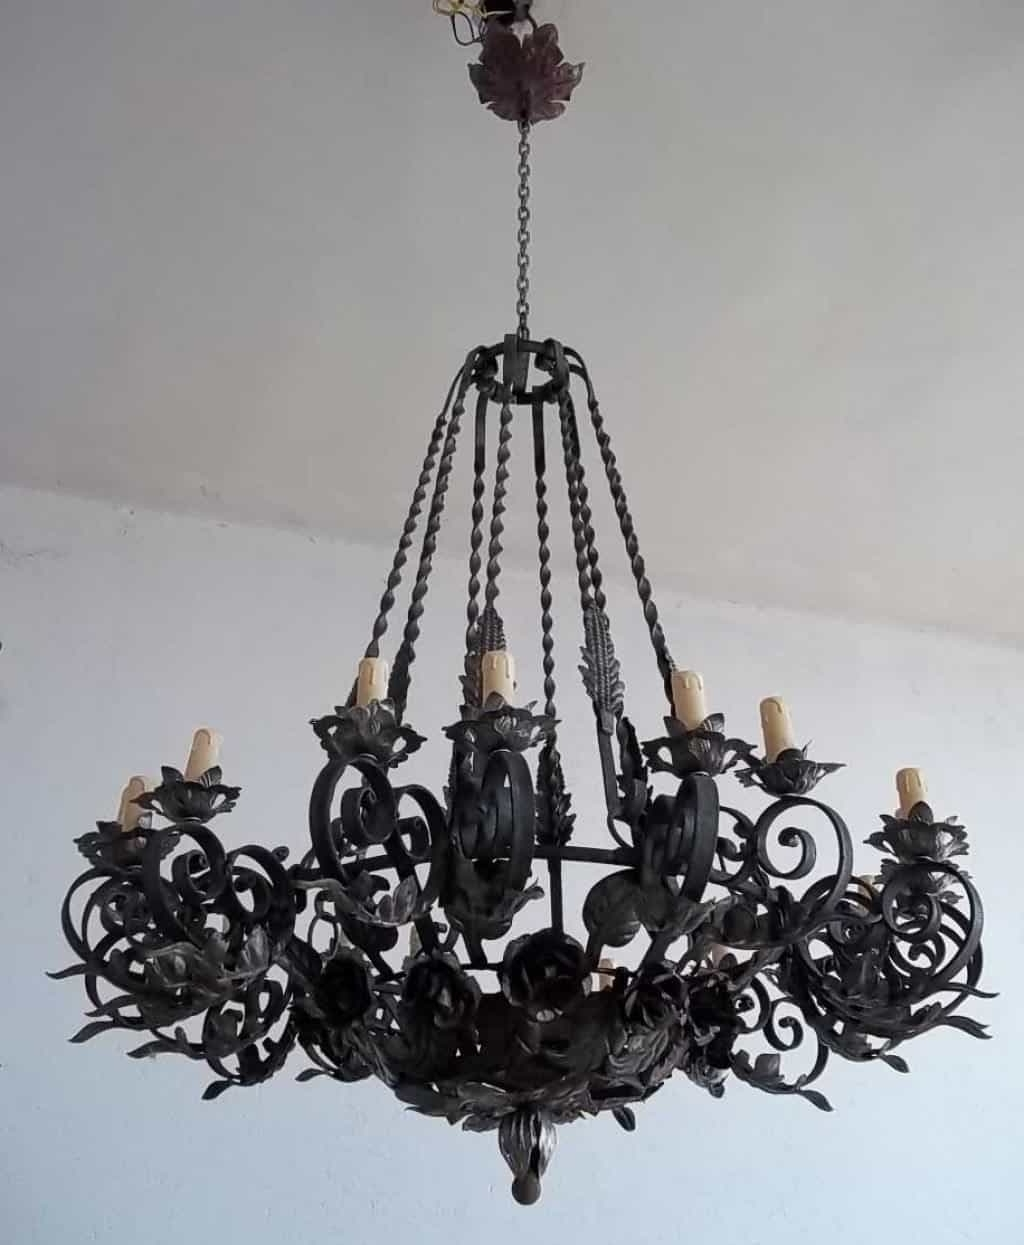 Newest Wrought Iron Chandelier Intended For Black Vintage Wrought Iron Chandelier Hung In The White Ceiling (View 4 of 20)